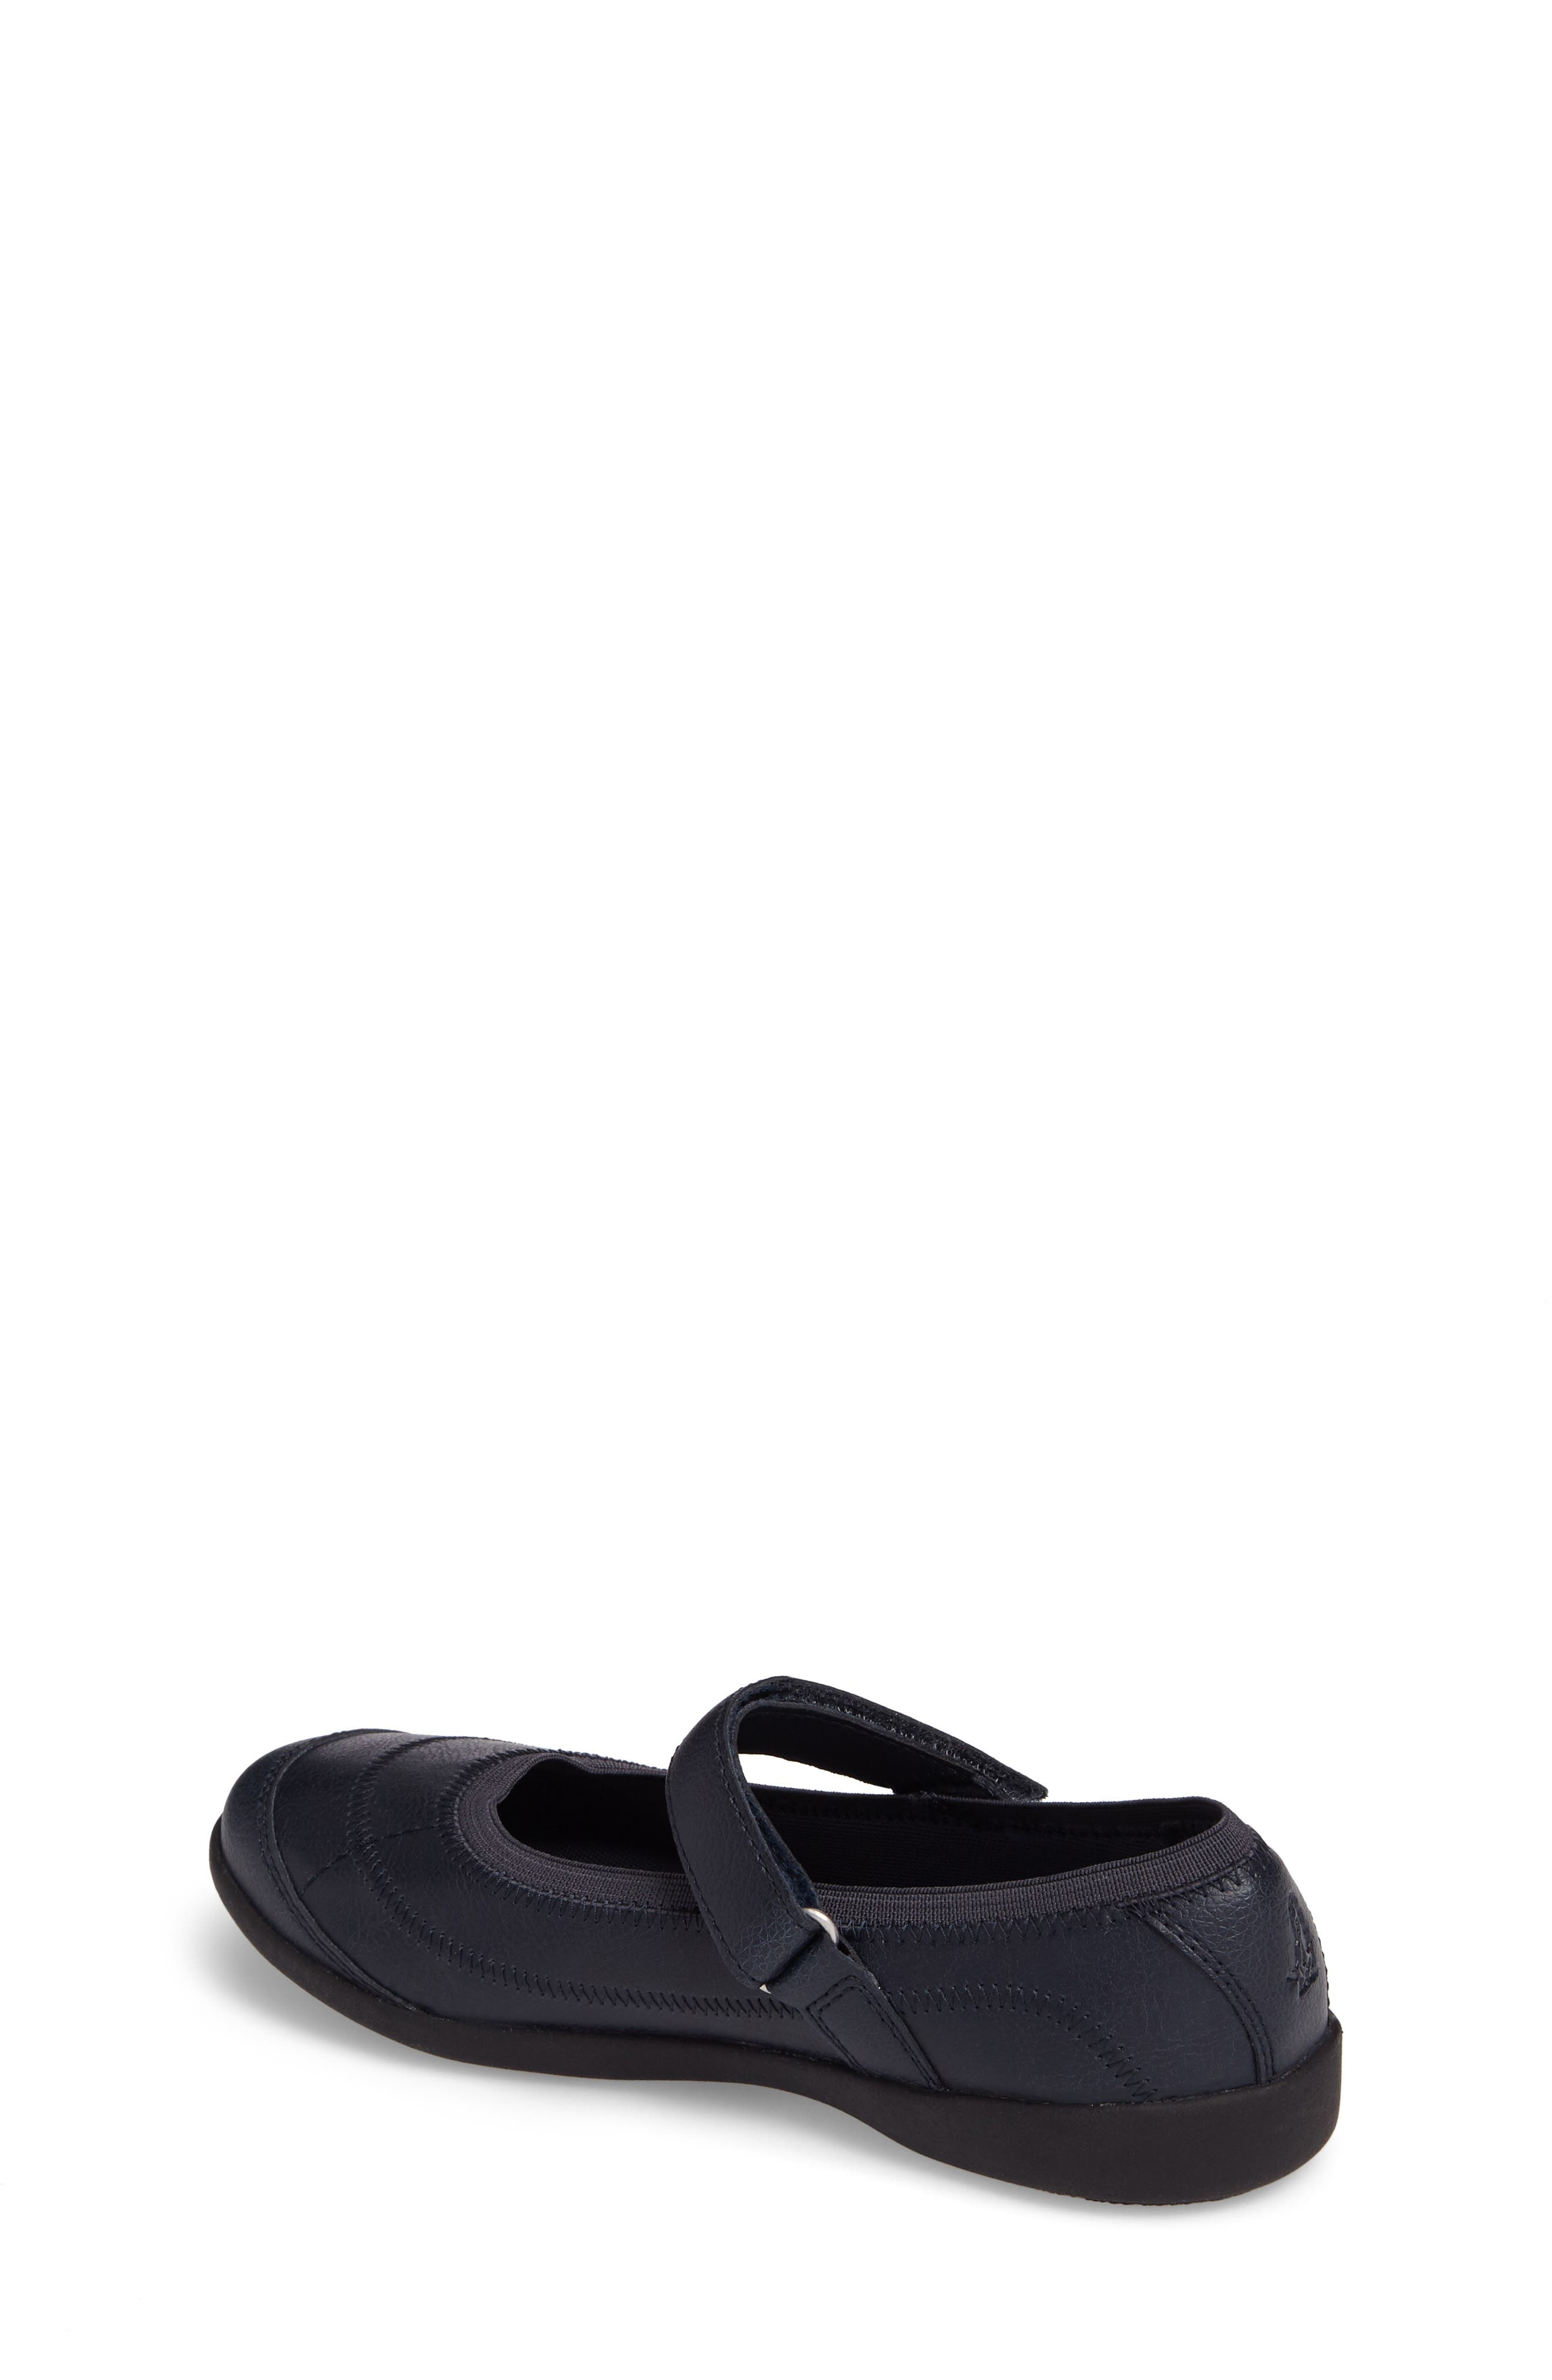 HUSH PUPPIES<SUP>®</SUP>, Reese Mary Jane Flat, Alternate thumbnail 2, color, NAVY LEATHER